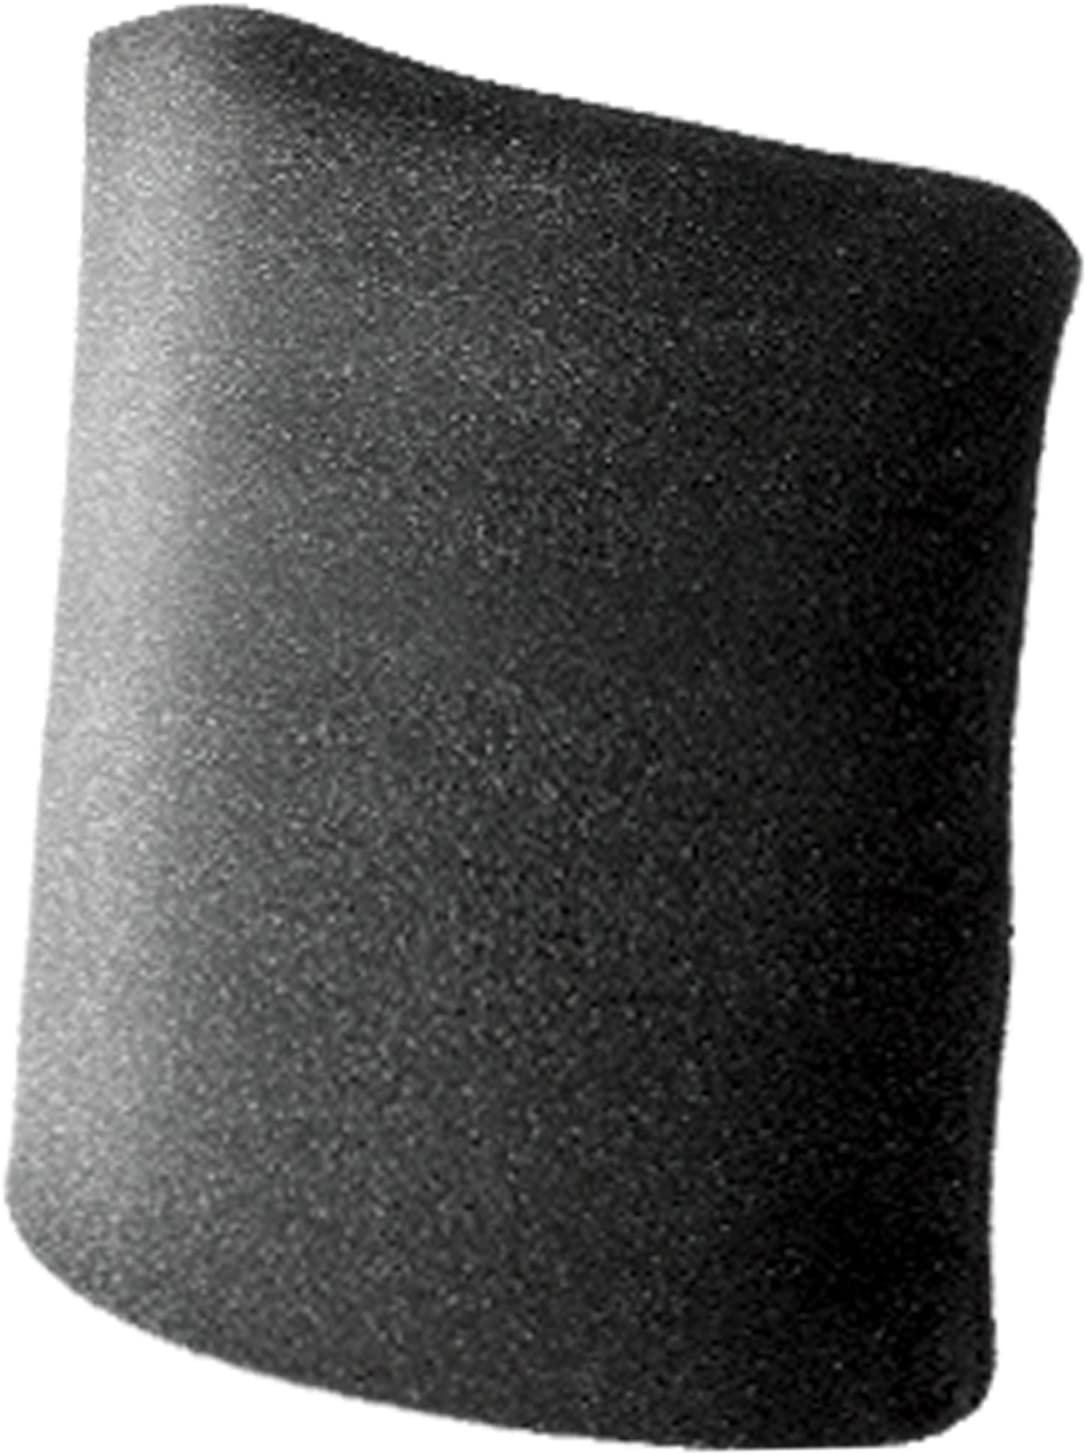 Vacmaster Foam Sleeve Filter, VFF21